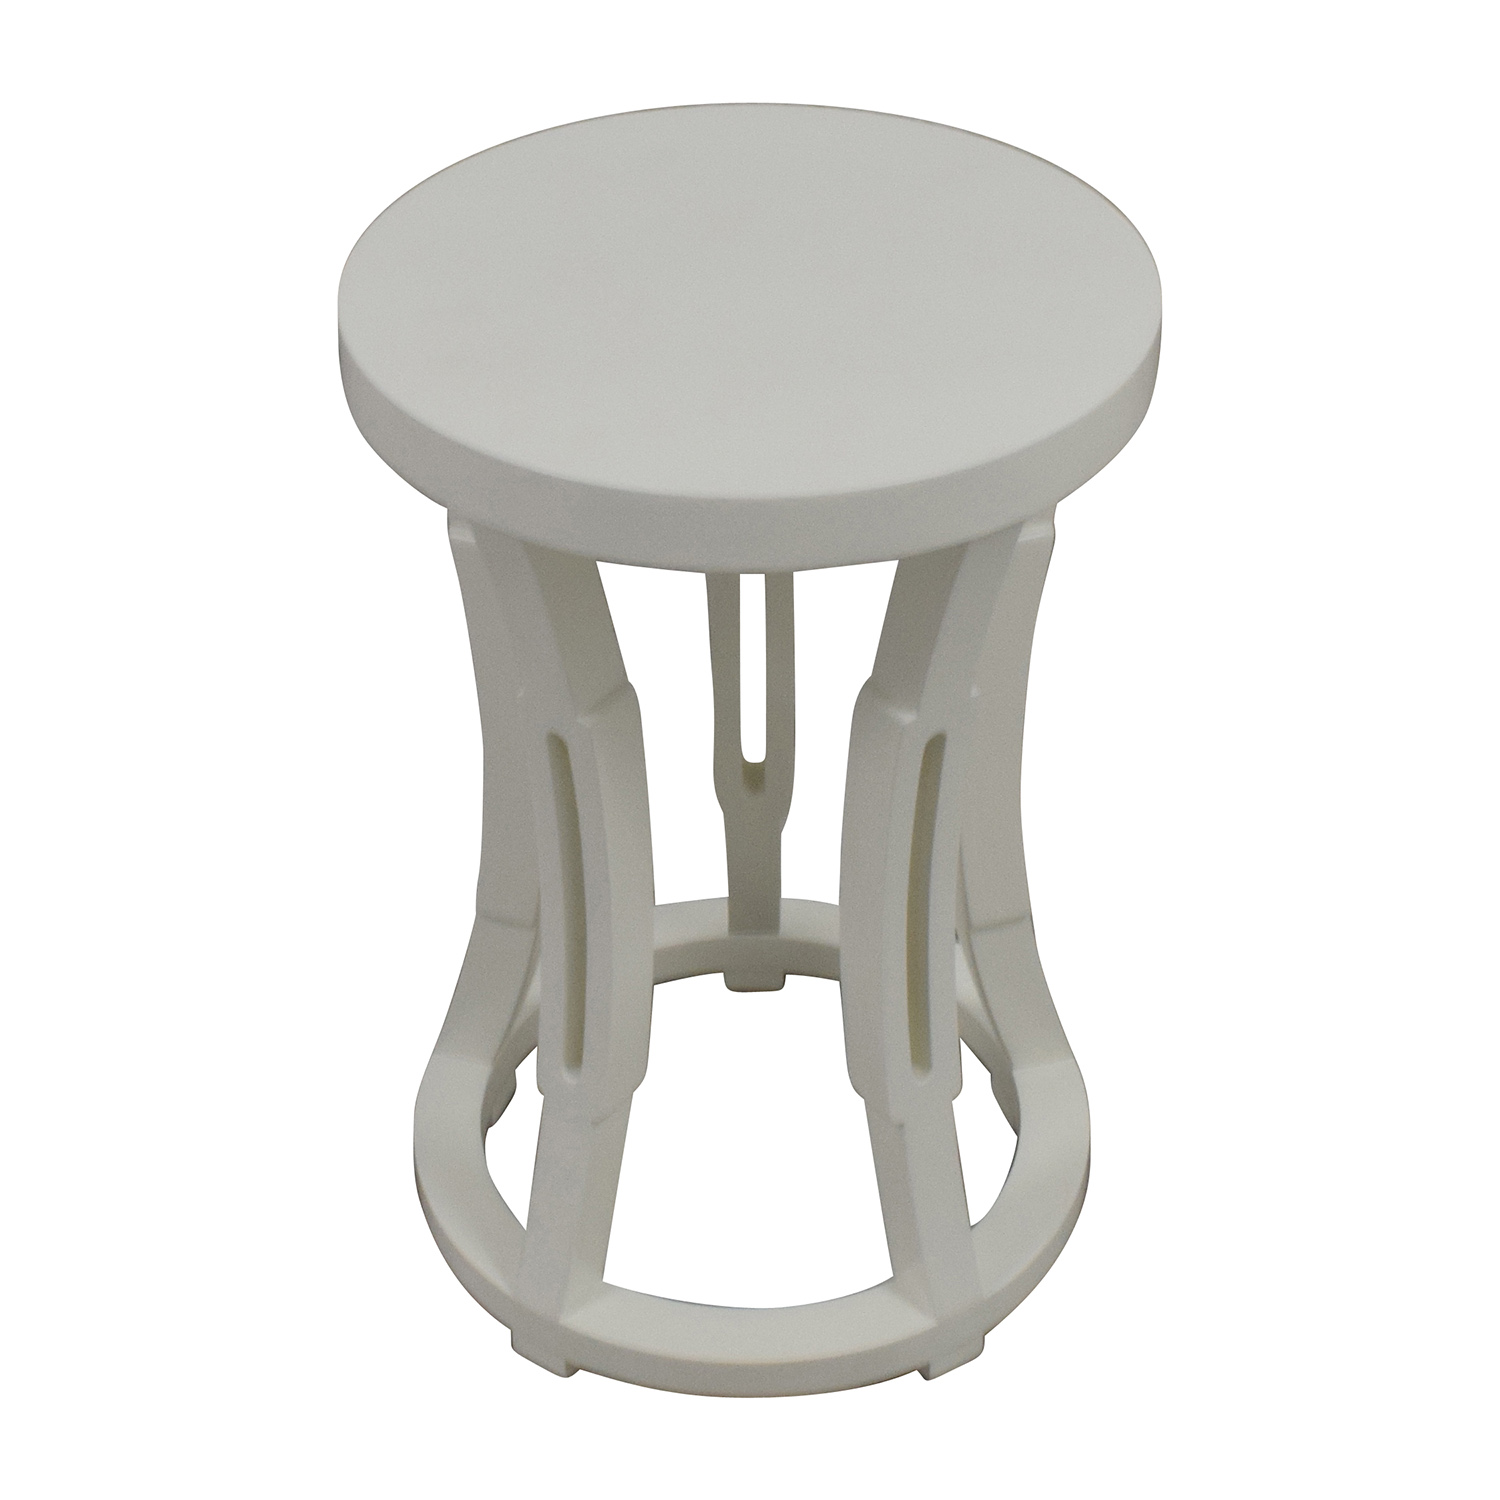 buy Bungalow 5 Hour Glass Stool Side Table or Stool Bungalow 5 Tables